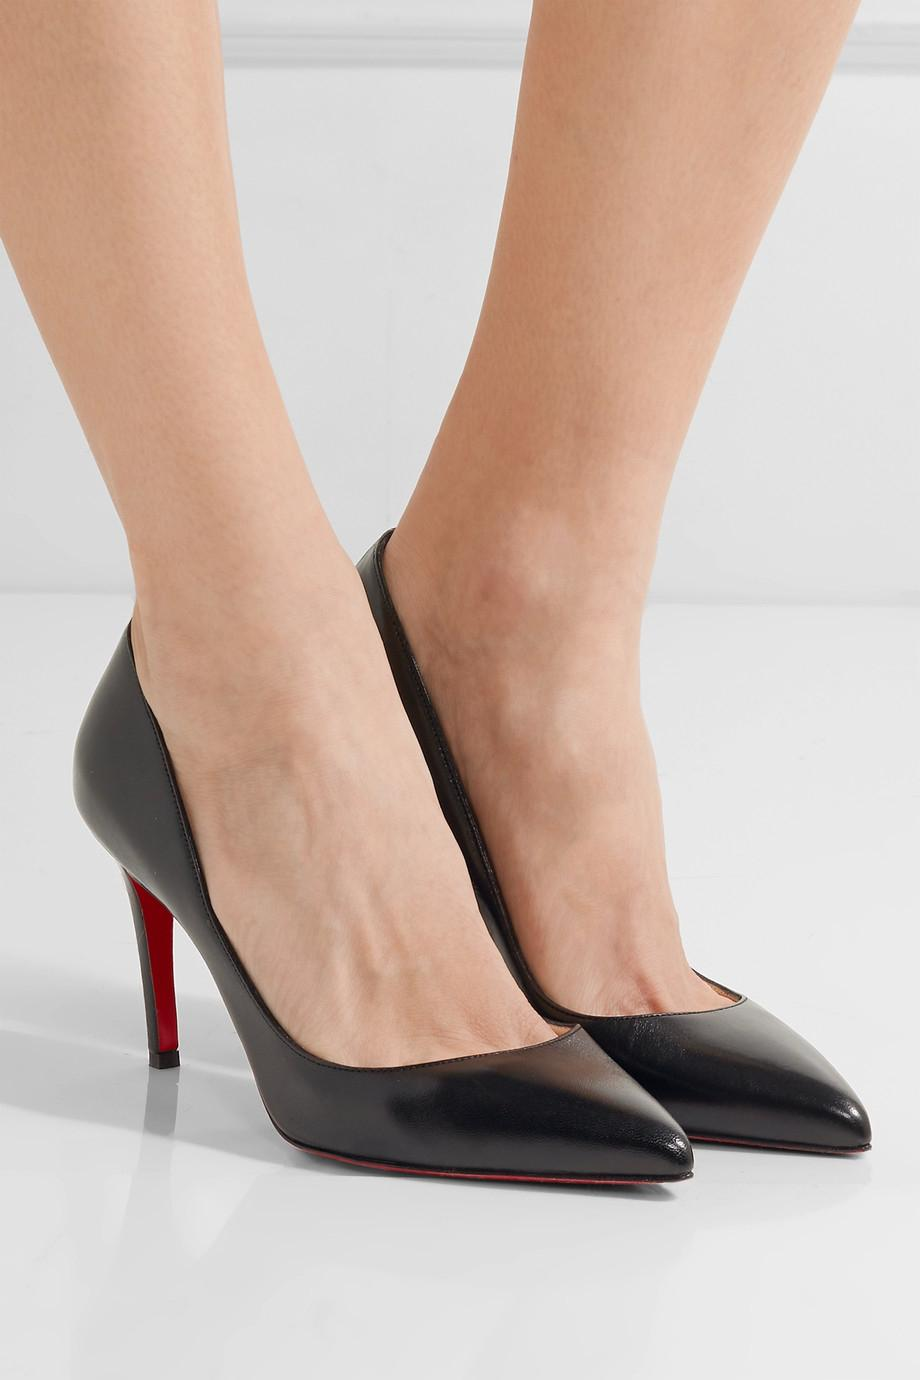 christian louboutin pigalle 85 mm black